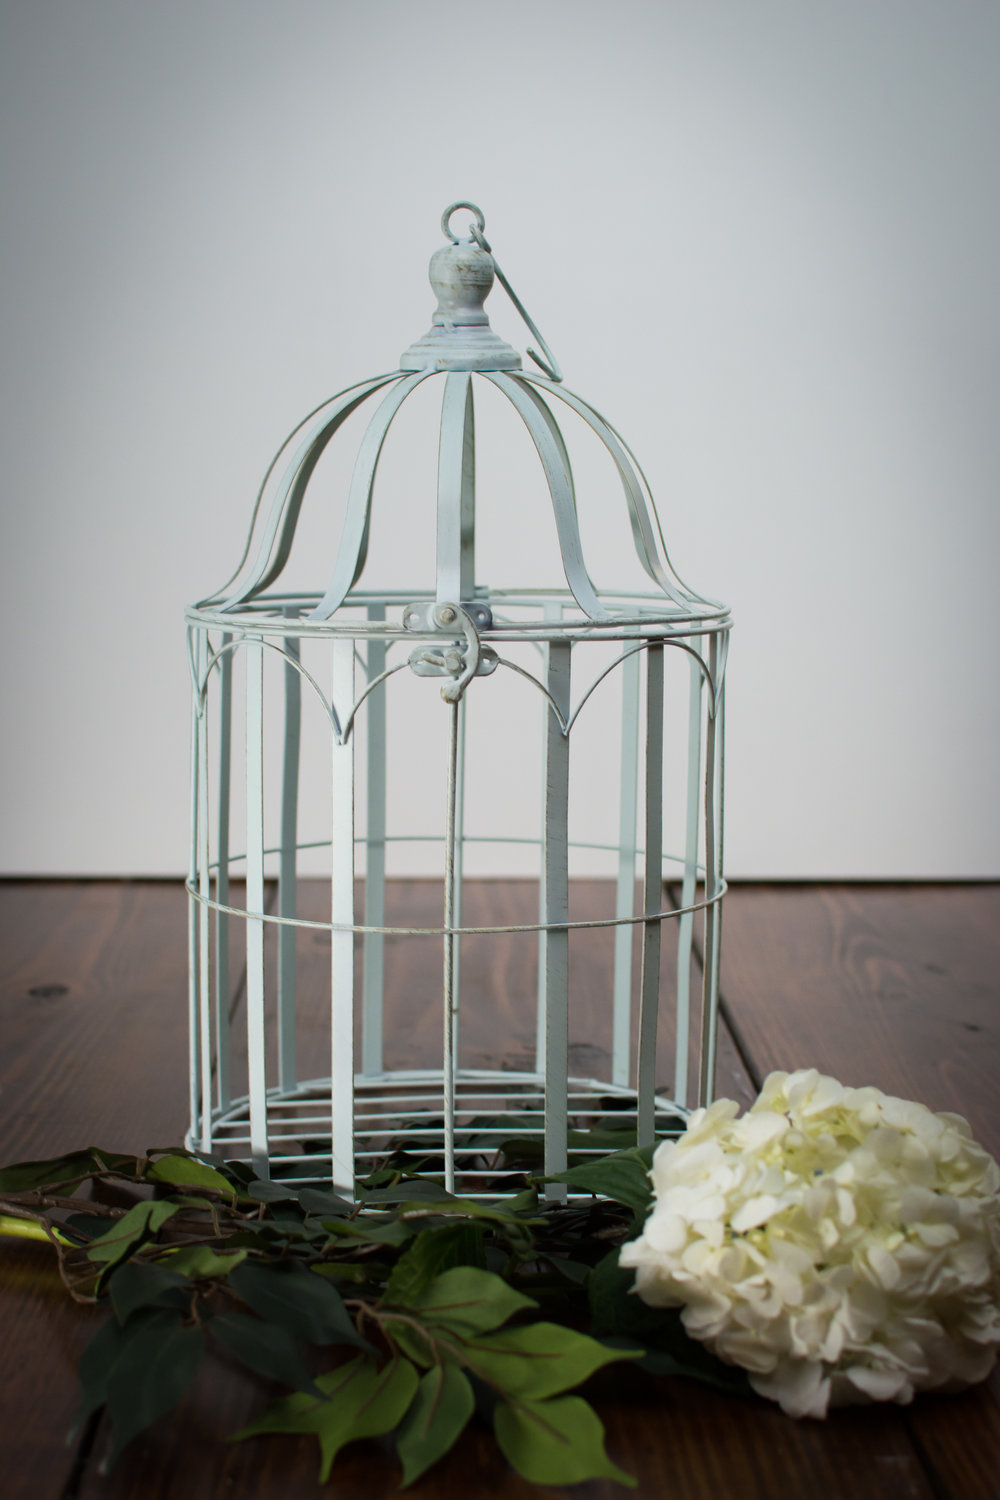 White birdcage   Price: $10.00  Inquire about quantity and availability